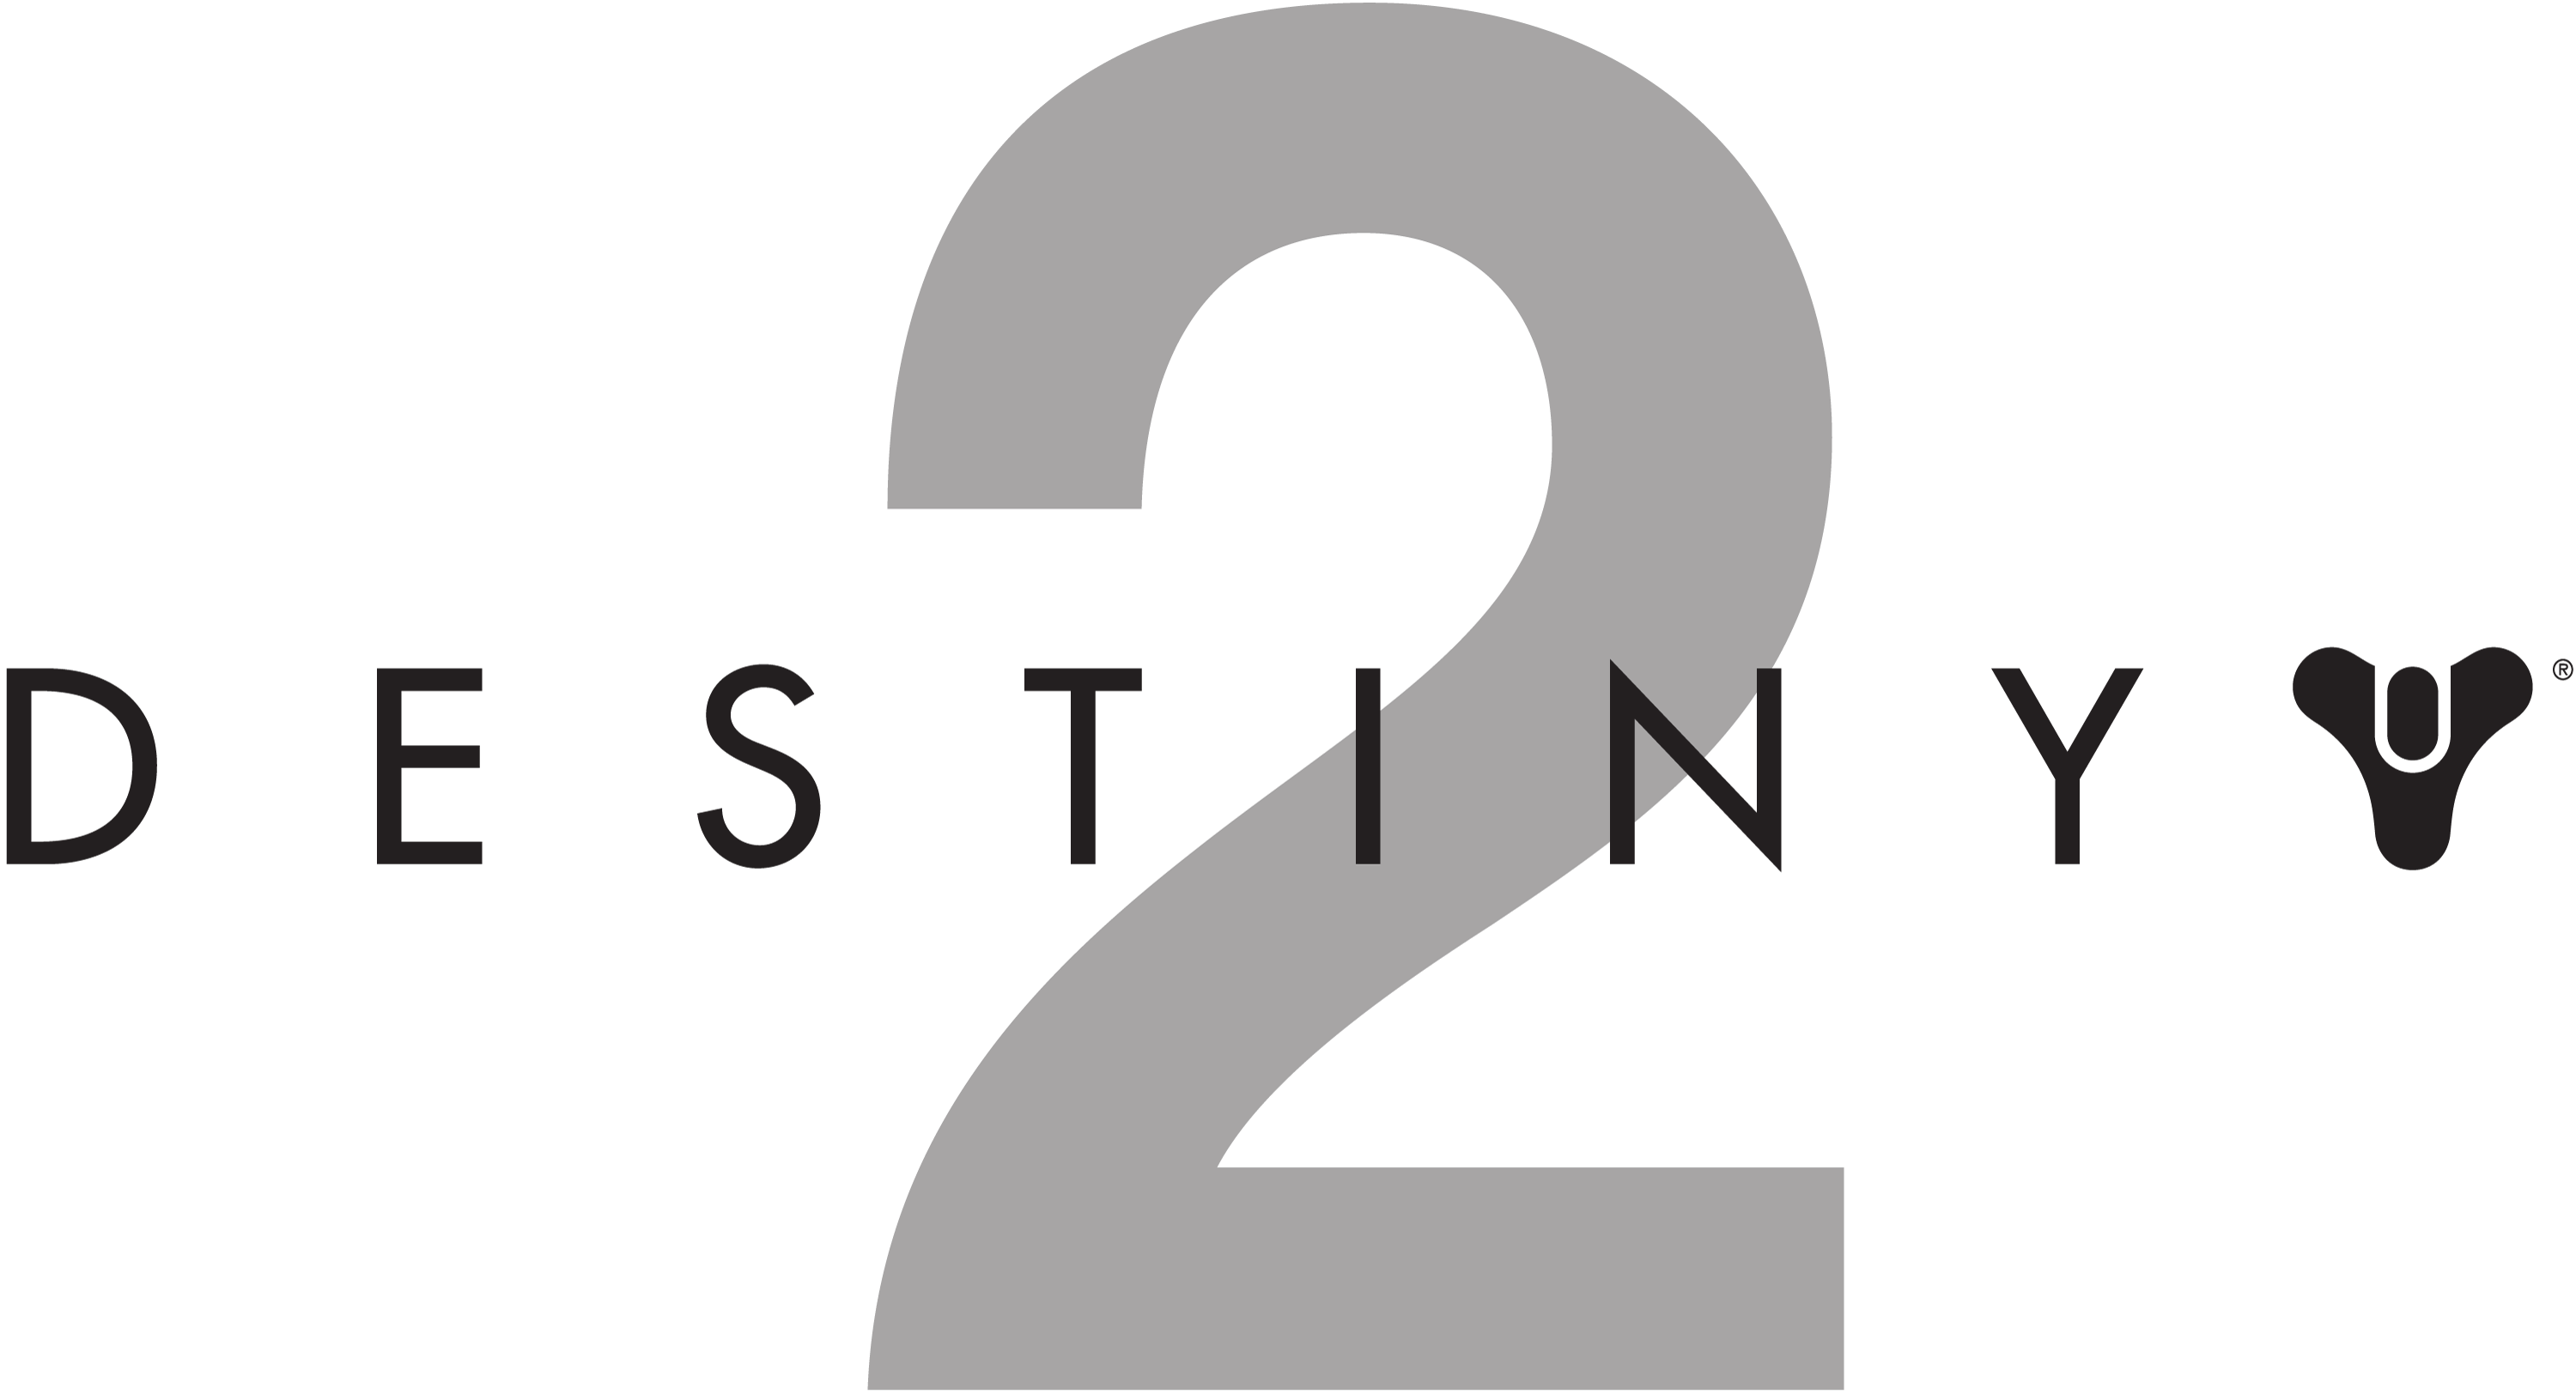 Destiny 2 logo png. File wikimedia commons filedestiny